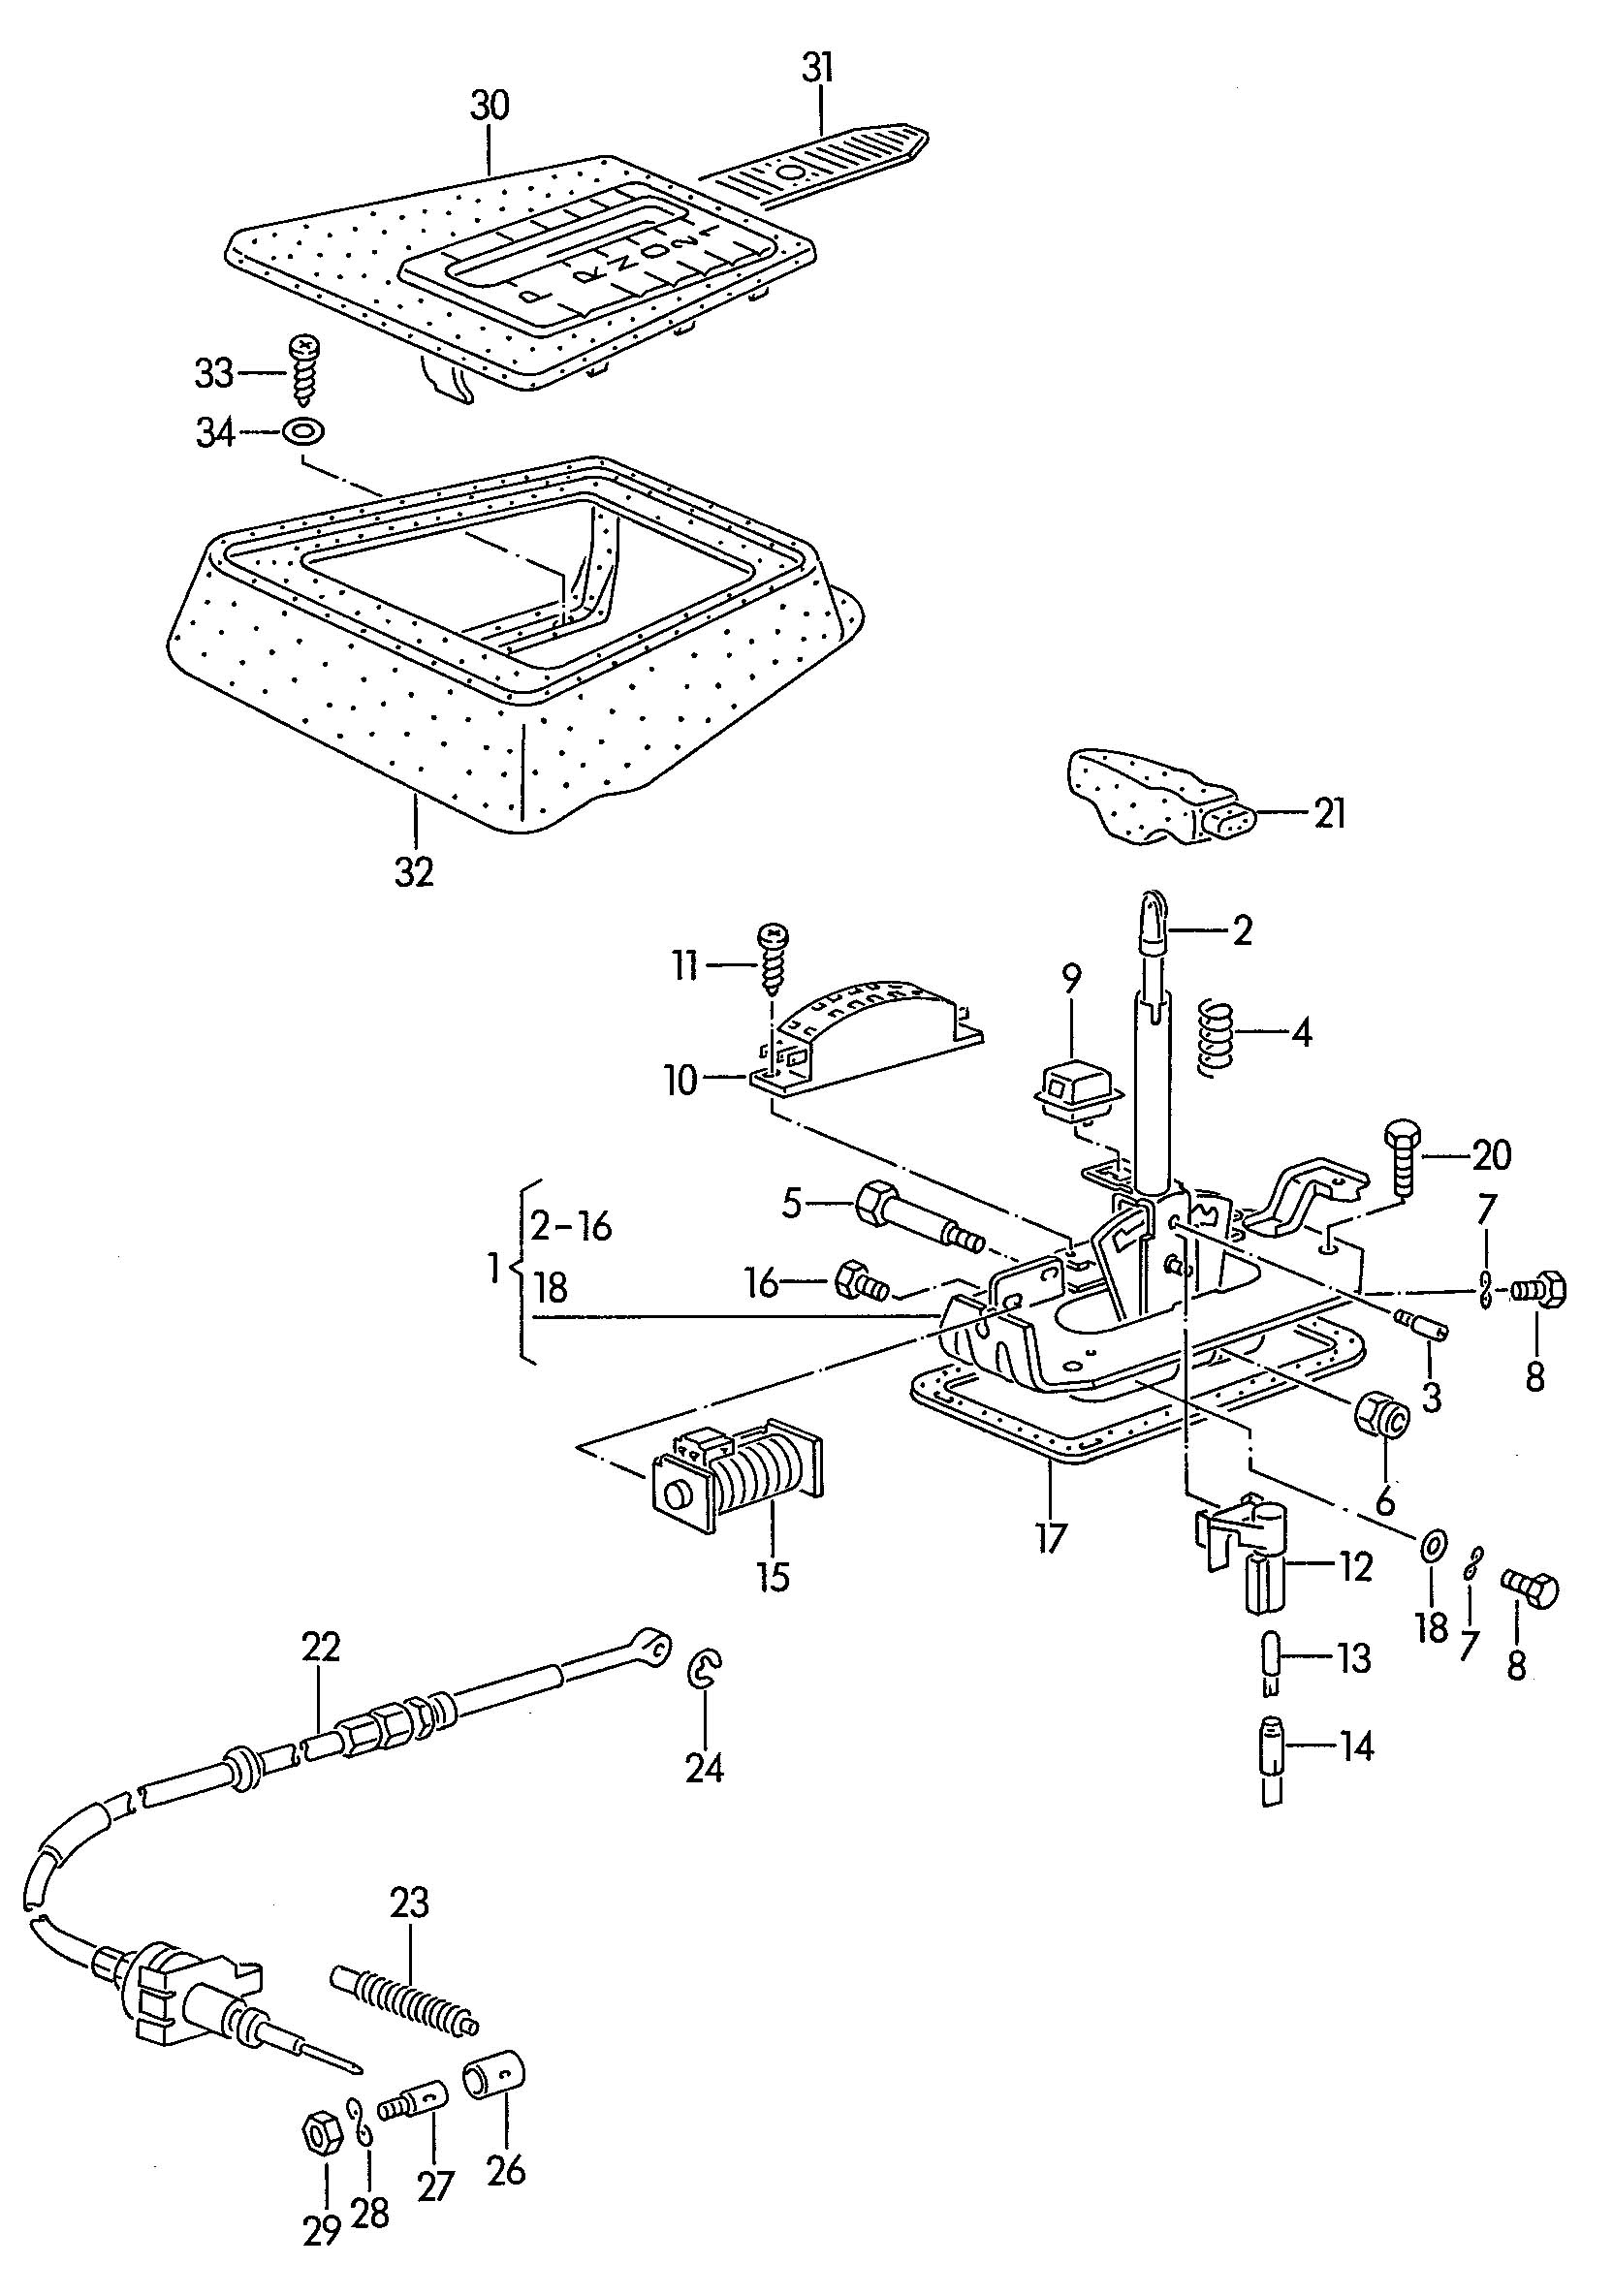 044123000  Toyota Pickup Fuse Box Diagram on 2002 camry fuse box diagram, 87 toyota pickup fog lights, 2005 toyota highlander fuse box diagram, toyota corolla fuse box diagram, 1979 toyota pickup wiring diagram, 1984 toyota pickup wiring diagram, 96 nissan pickup wiring diagram, 87 toyota pickup horn, 87 toyota pickup blower motor, 87 toyota pickup hood, 1979 trans am fuse box diagram, 1990 toyota pickup wiring diagram, 1982 toyota pickup wiring diagram, 2000 camry fuse box diagram, 1986 toyota fuse box diagram, 87 toyota pickup fuel pump relay, 2003 toyota highlander fuse box diagram, 87 toyota pickup engine swap, 87 toyota pickup radio fuse, toyota t100 fuse box diagram,